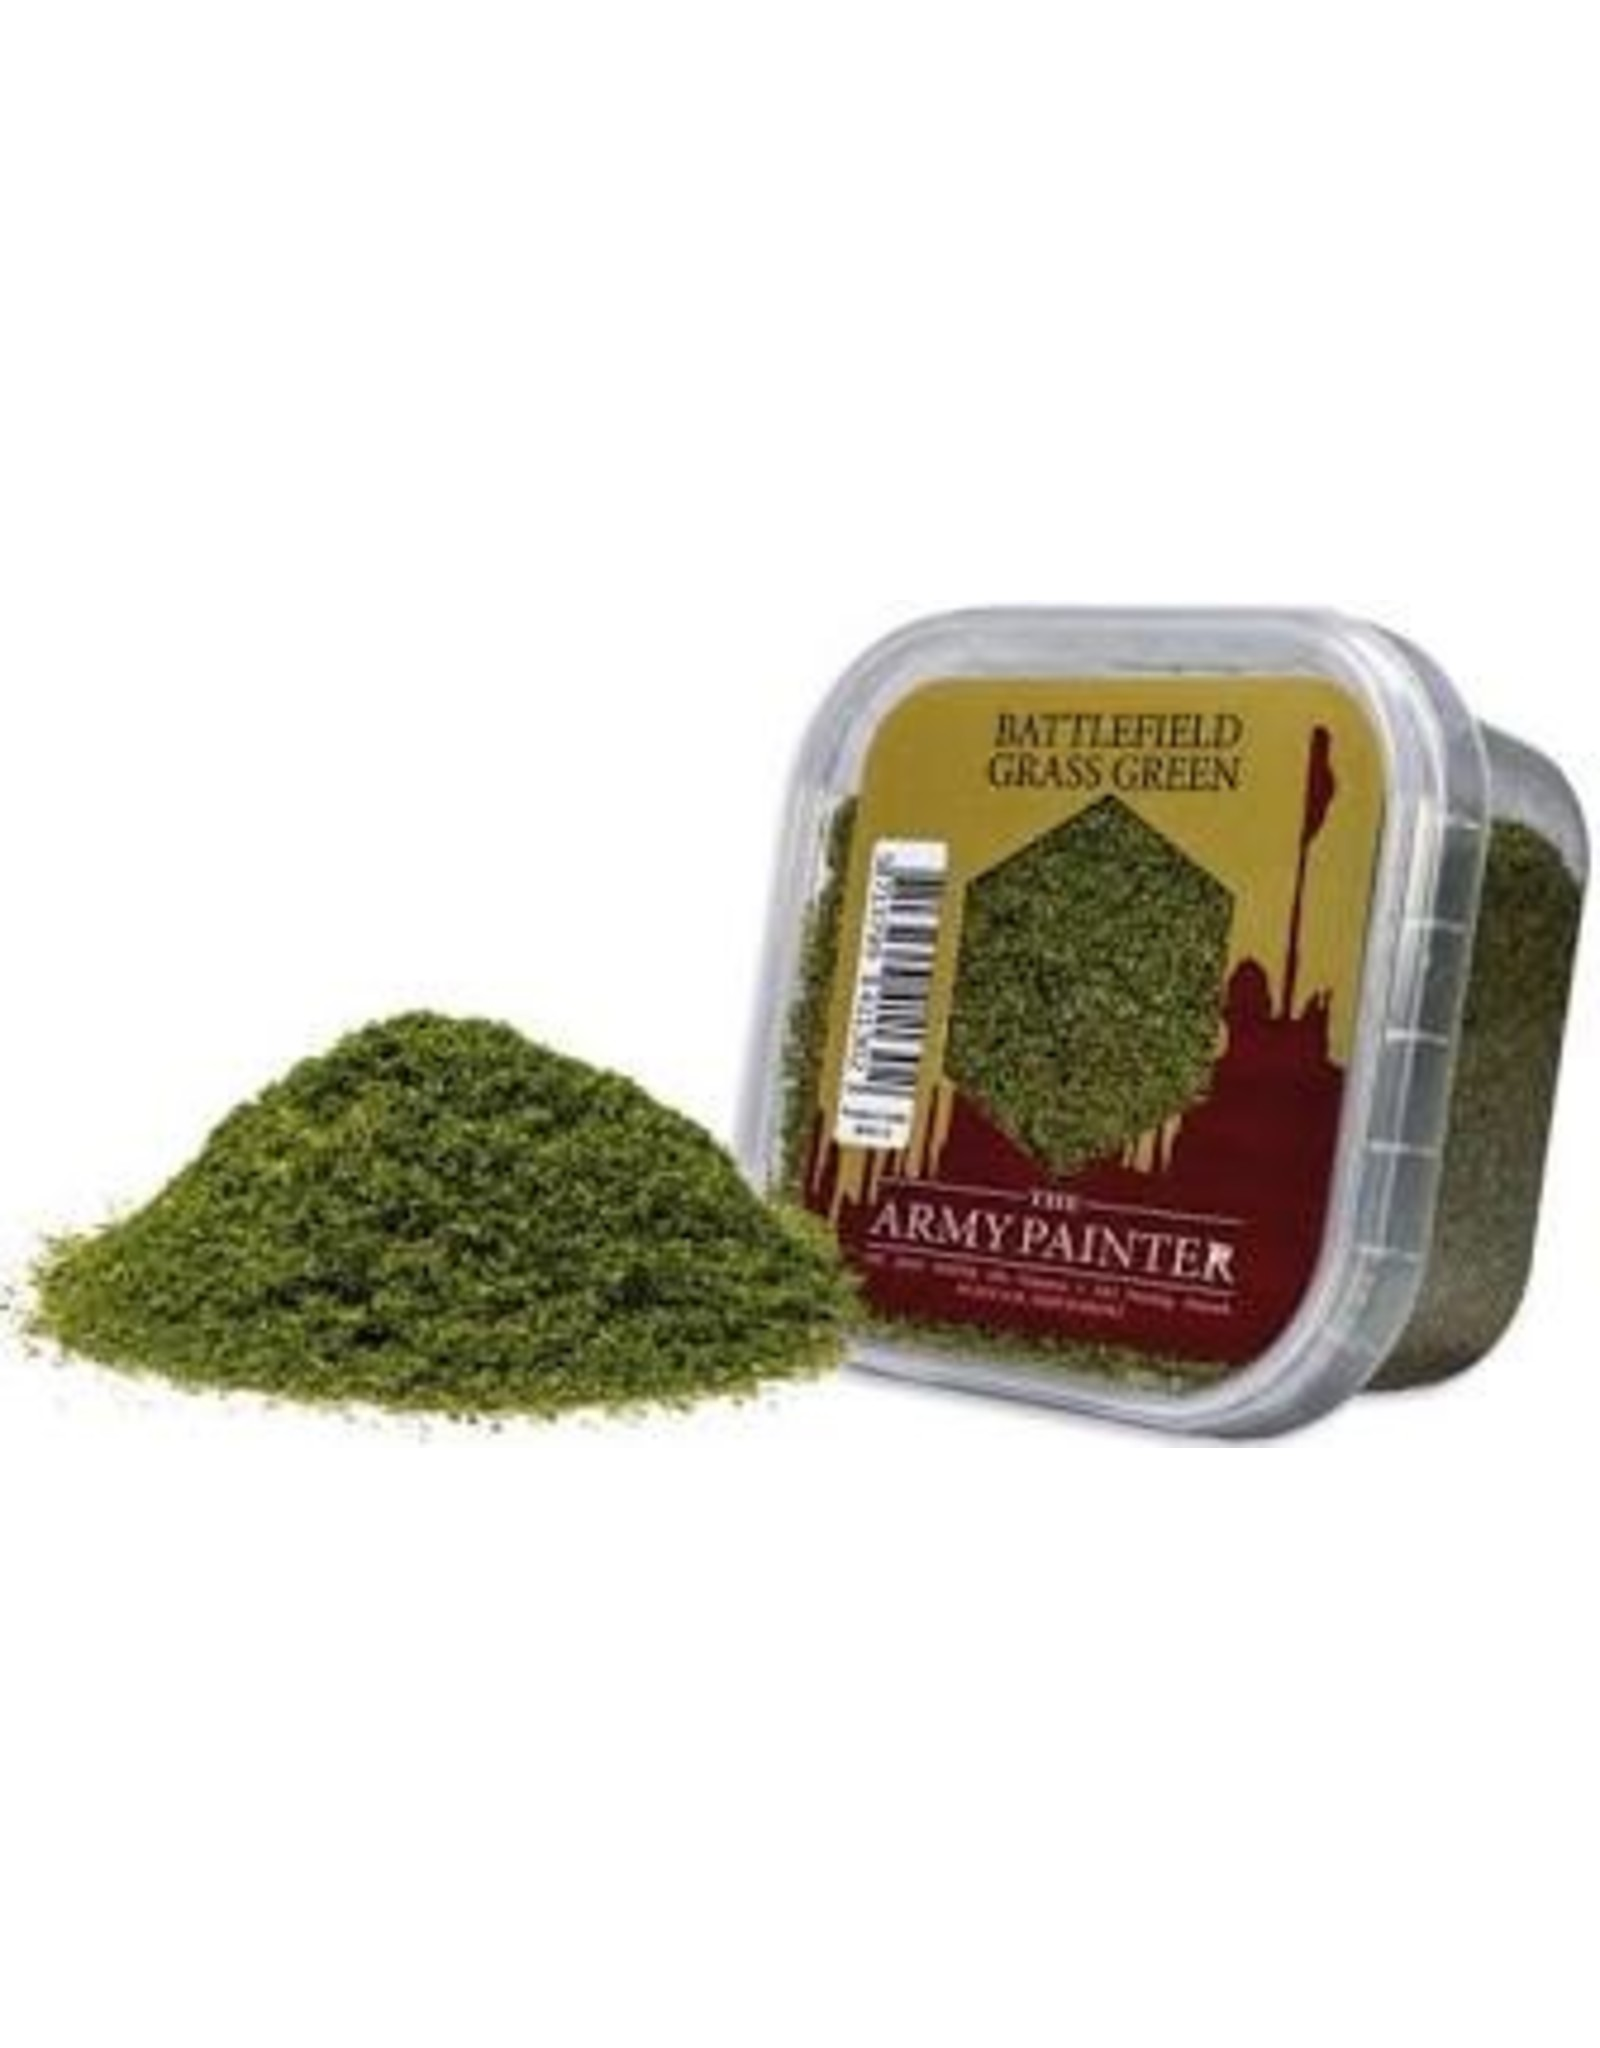 Army Painter Battlefield Grass Green Basing